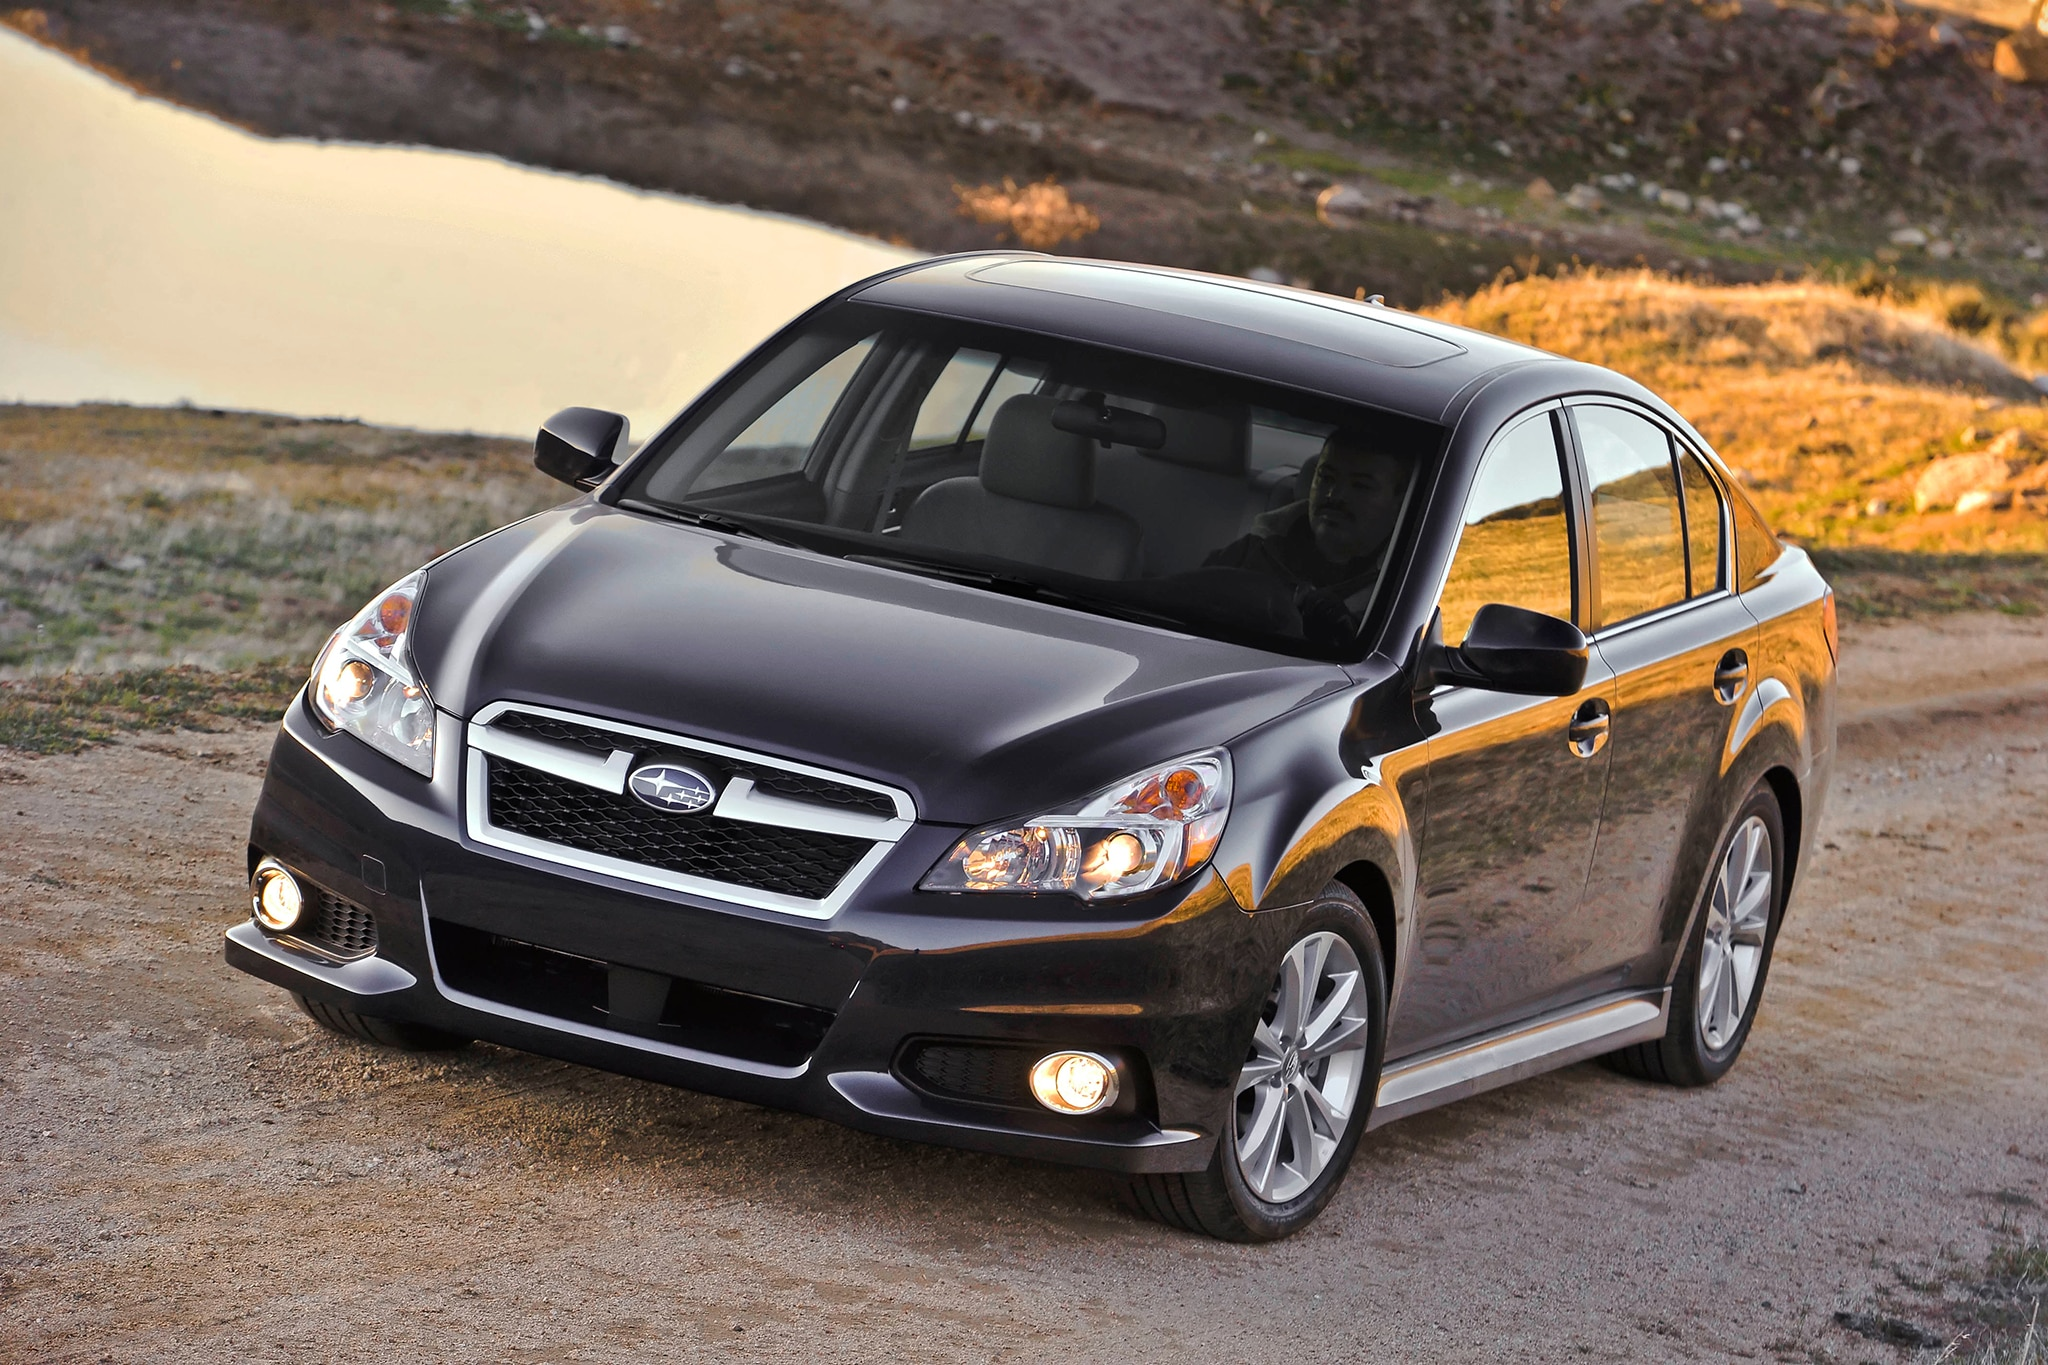 2014 subaru legacy outback undercut competitions prices 2013 subaru legacy vanachro Images